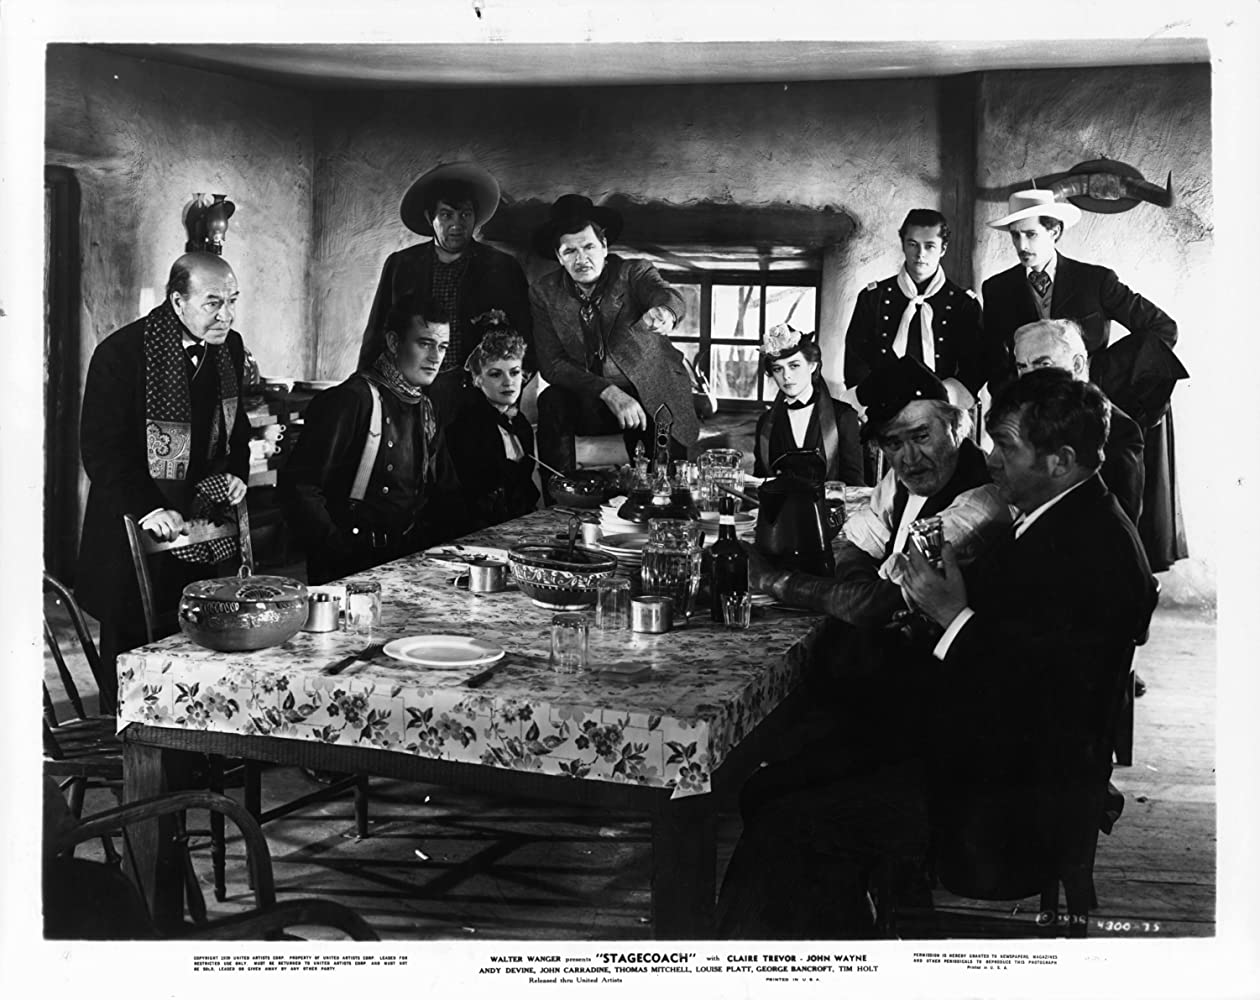 John Wayne, John Carradine, George Bancroft, Berton Churchill, Andy Devine, Francis Ford, Tim Holt, Donald Meek, Thomas Mitchell, Louise Platt, and Claire Trevor in Stagecoach (1939)